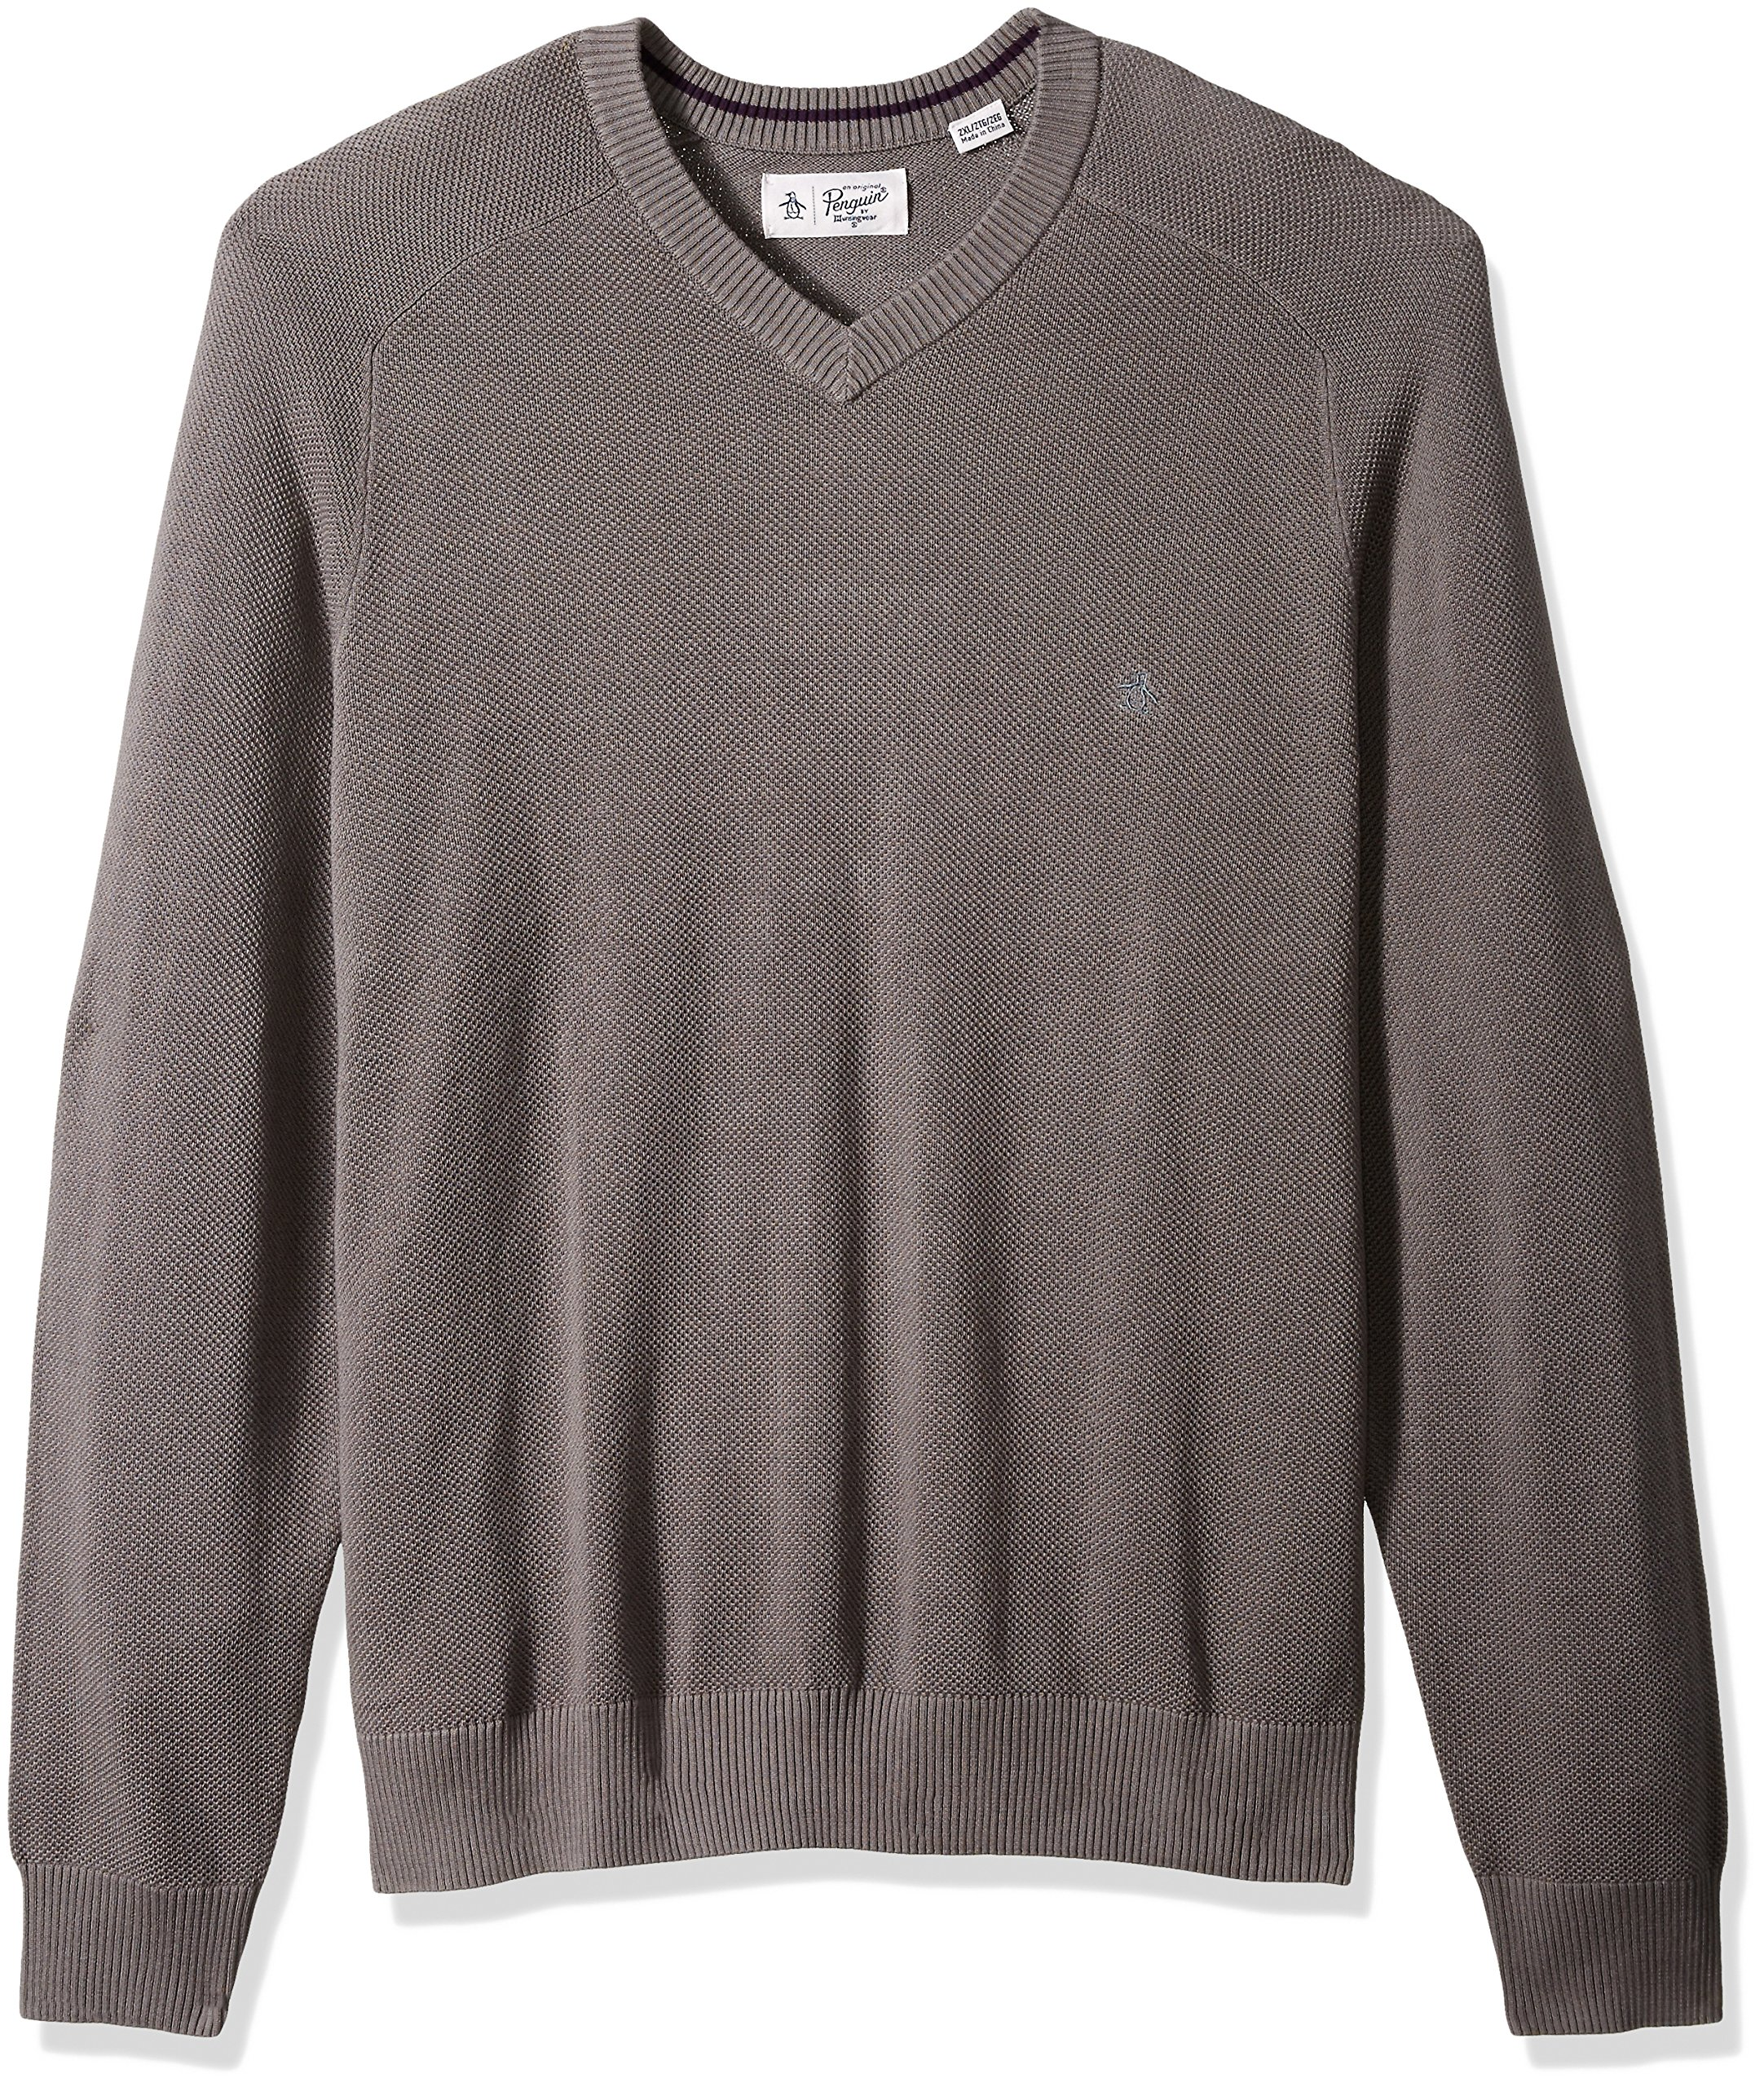 Original Penguin Men's Big and Tall Honeycomb V-Neck Sweater, Steel Gray, 1 XL-Extra Large